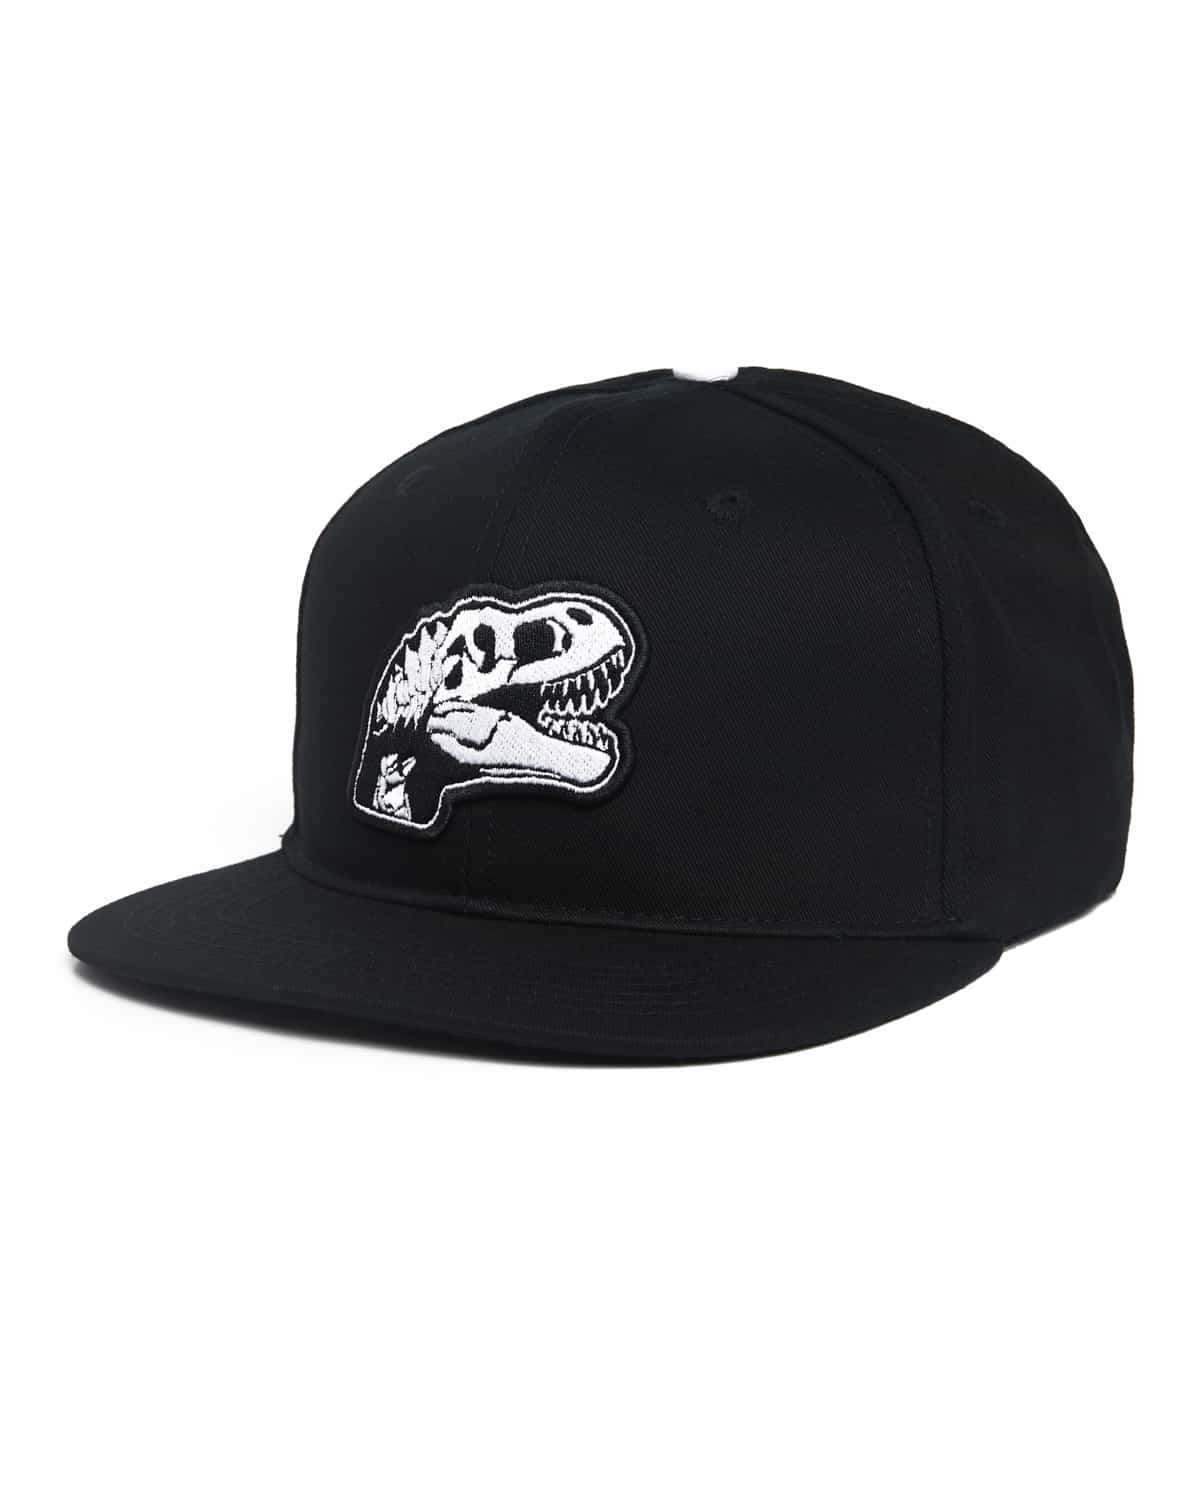 Lost Lands 'Neck Breaker' Snapback